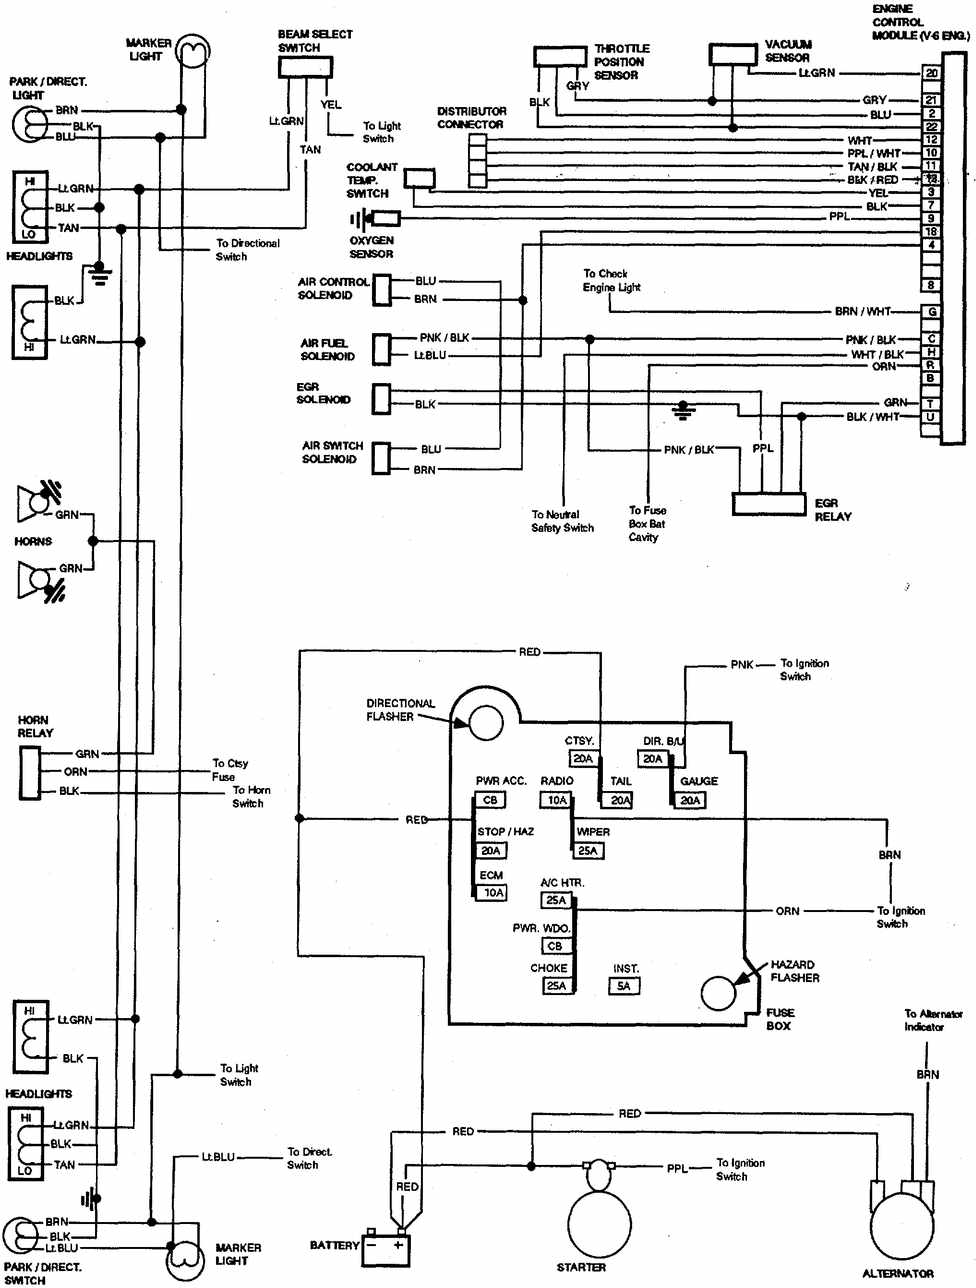 1975 Chevrolet Wiring Diagram List Of Schematic Circuit Chevy 1978 Turn Signal Detailed Schematics Rh Antonartgallery Com Camaro